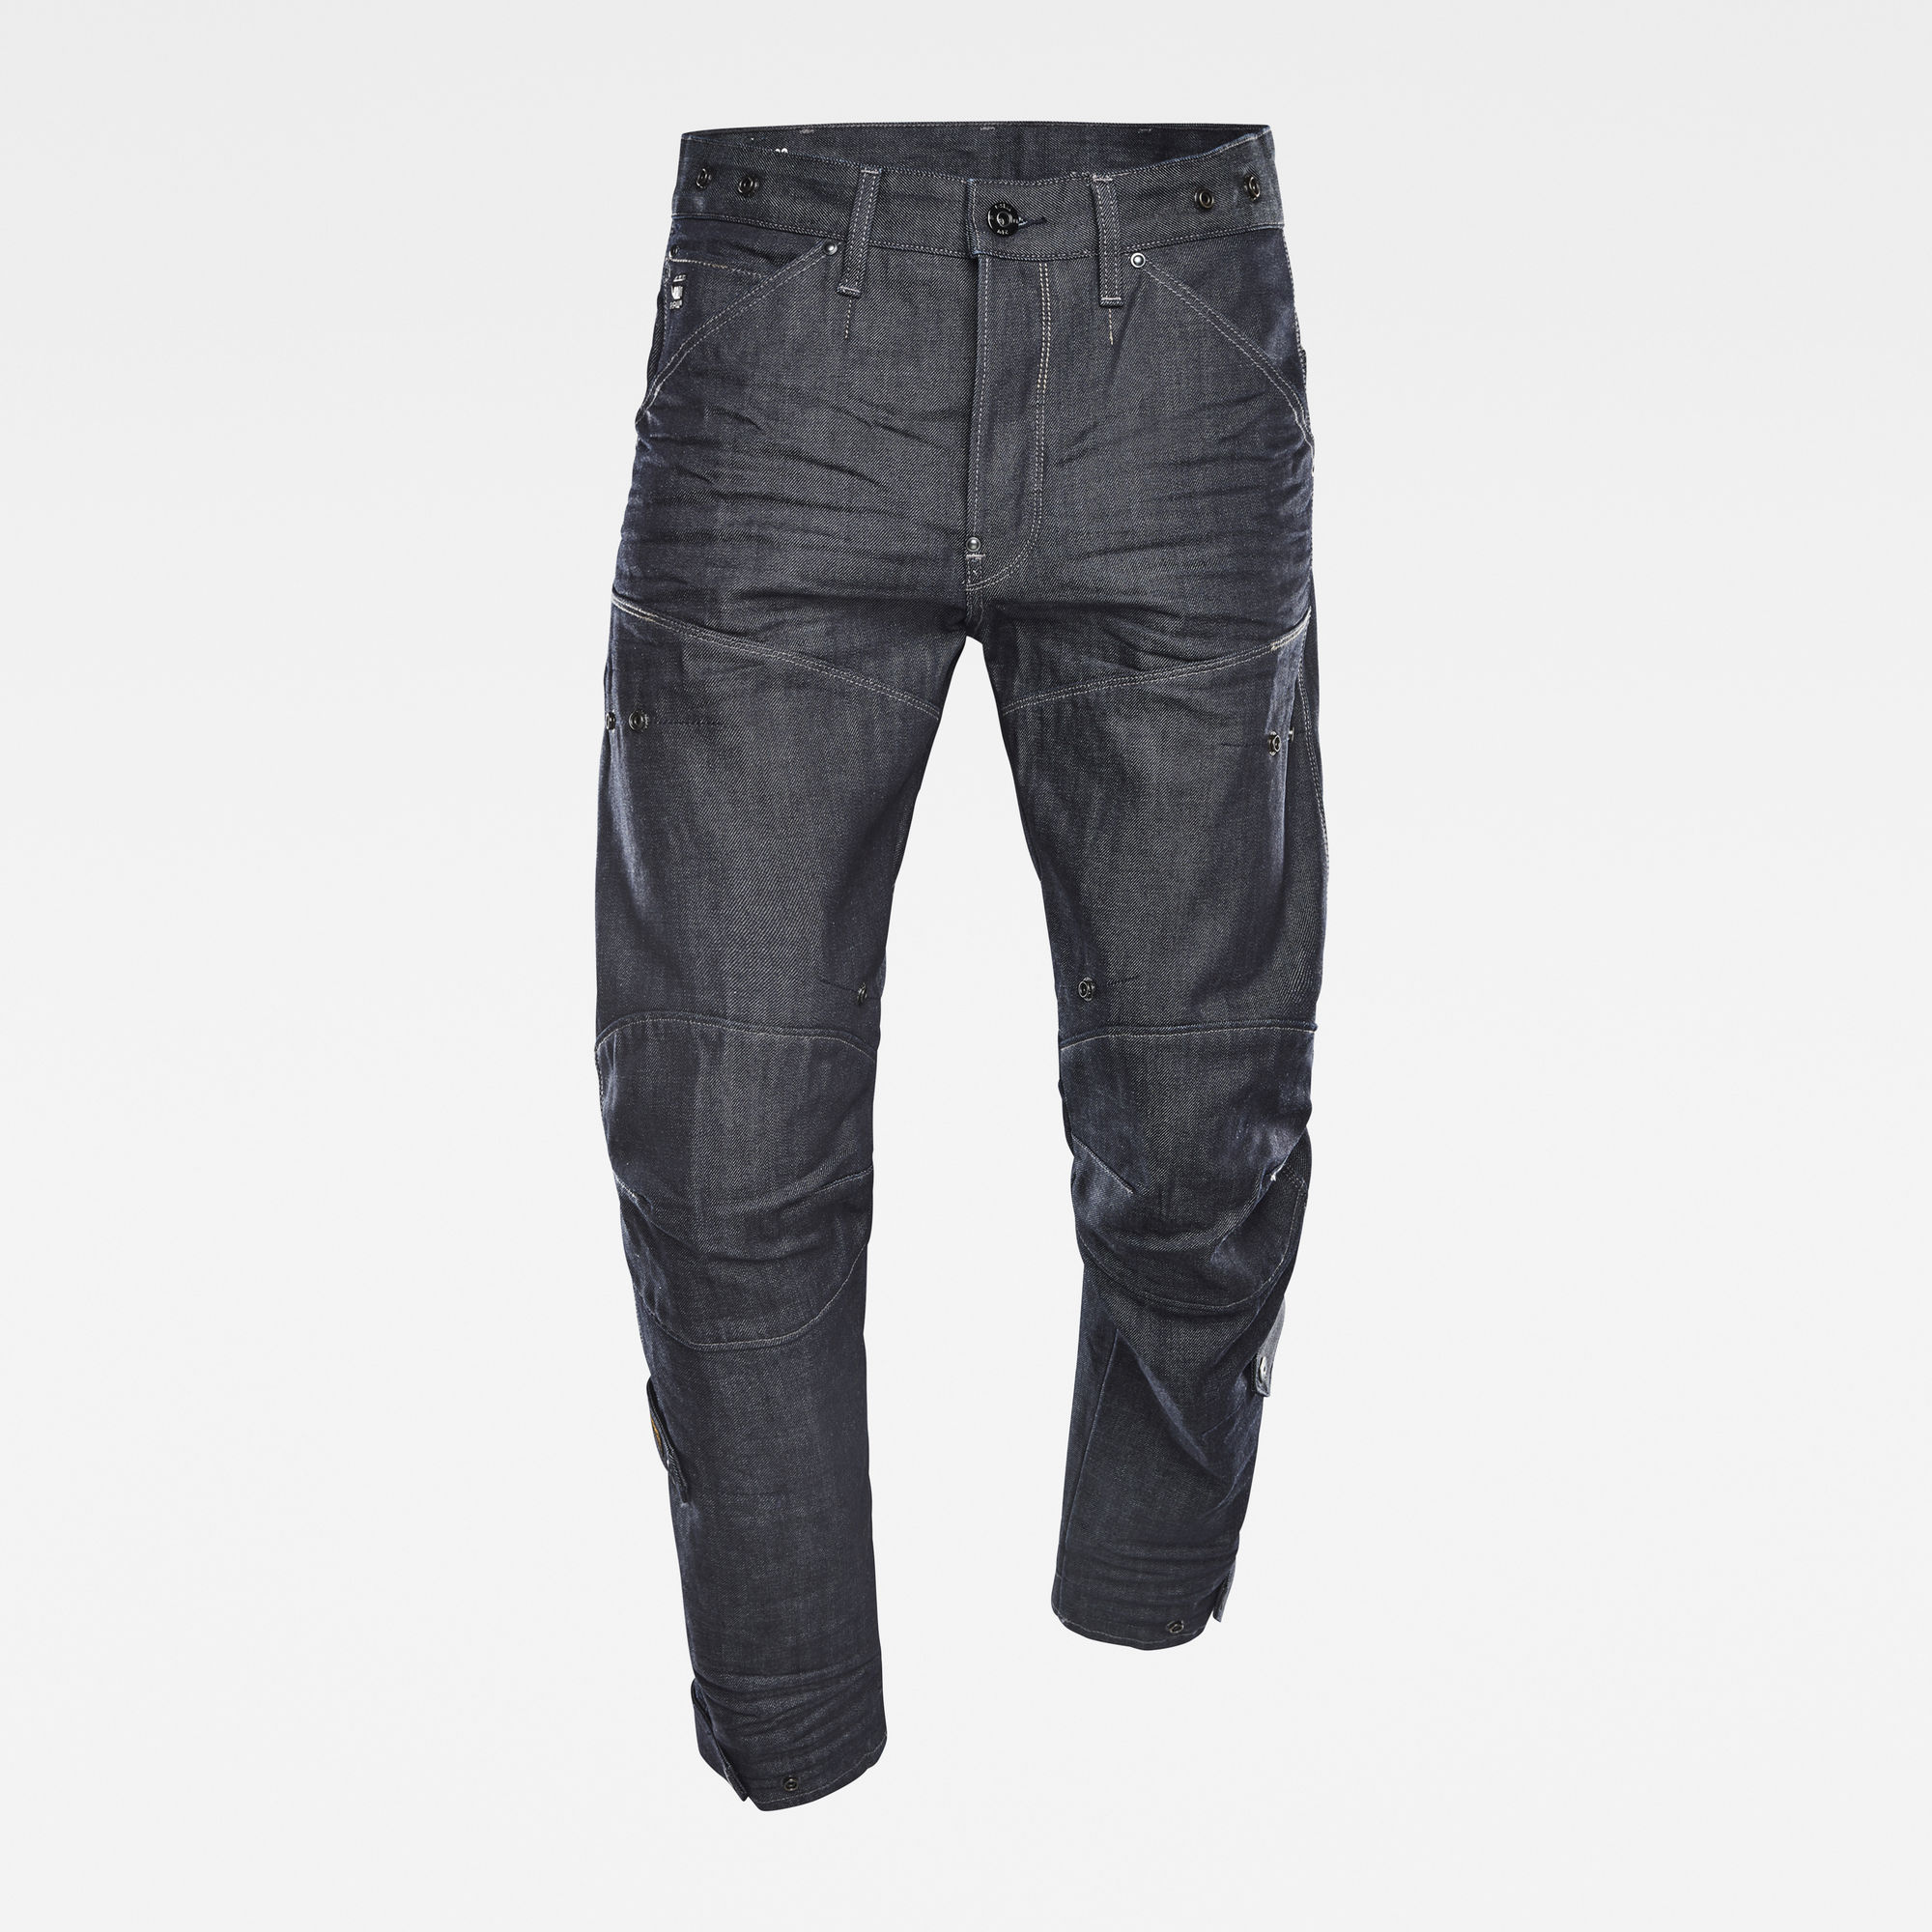 G-Star RAW Heren E 5620 3D Original Relaxed Adjuster Jeans Donkerblauw